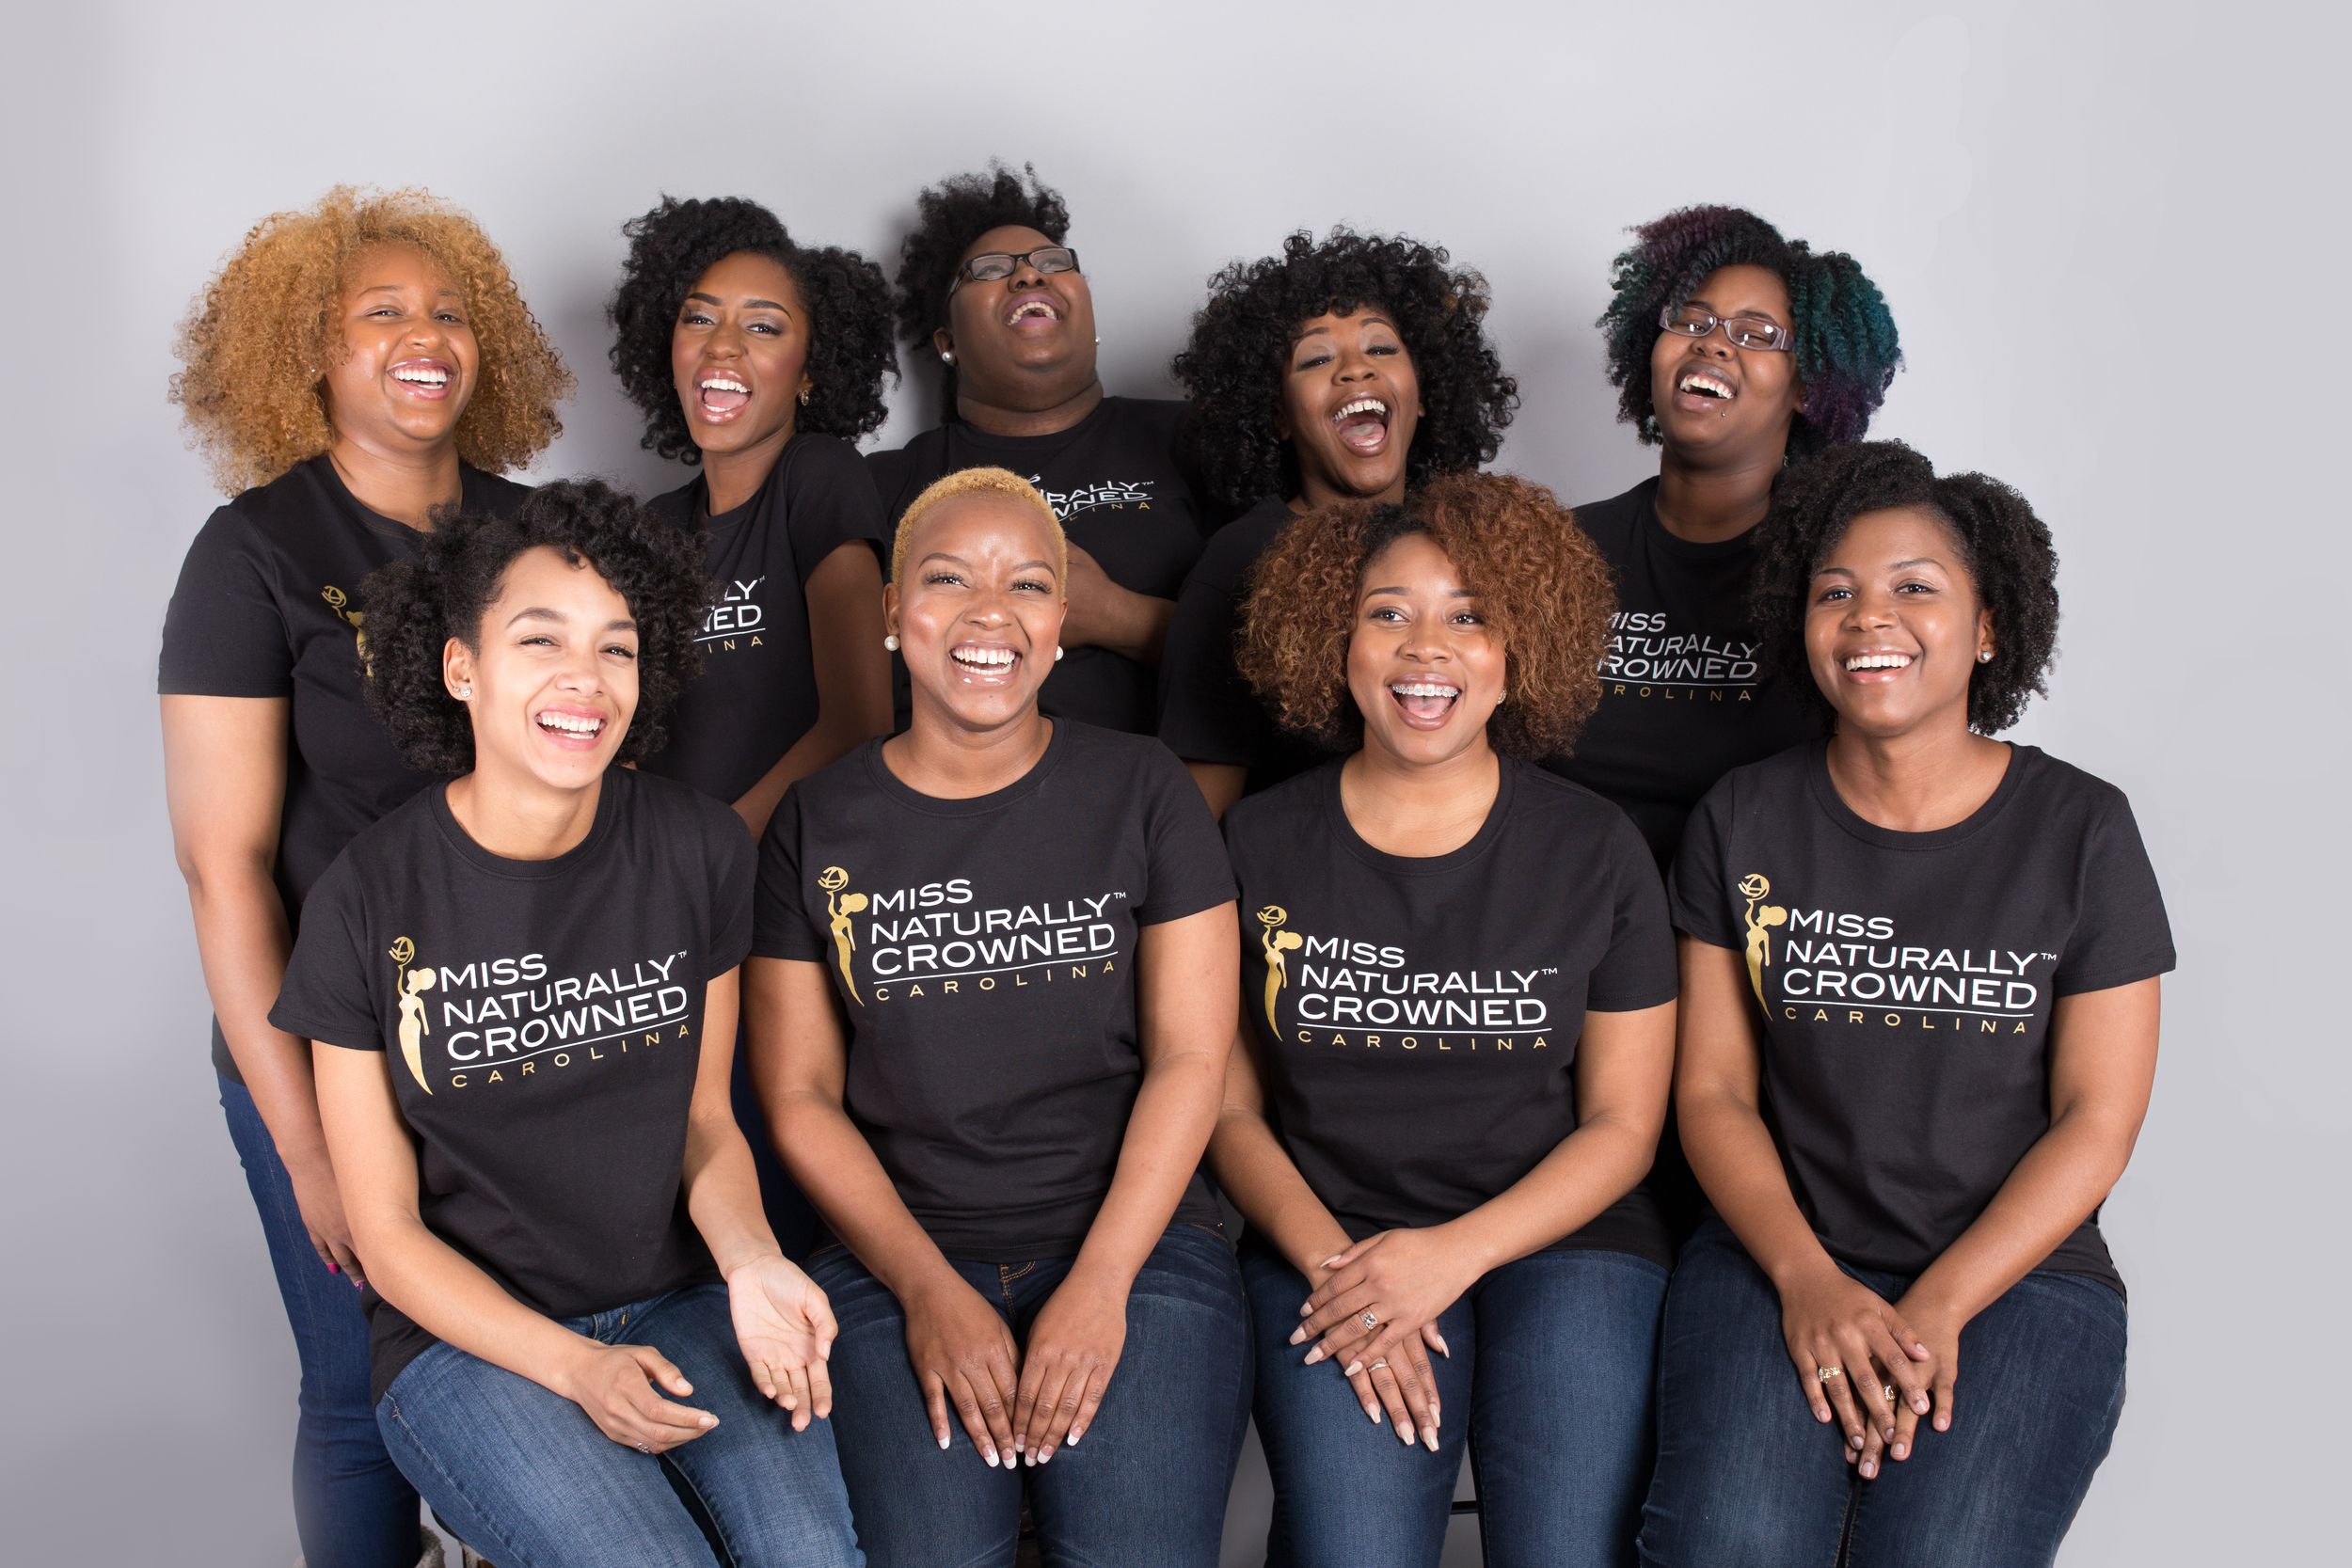 2016 Miss Naturally Crowned Carolina contestants | Latoya Dixon Photography